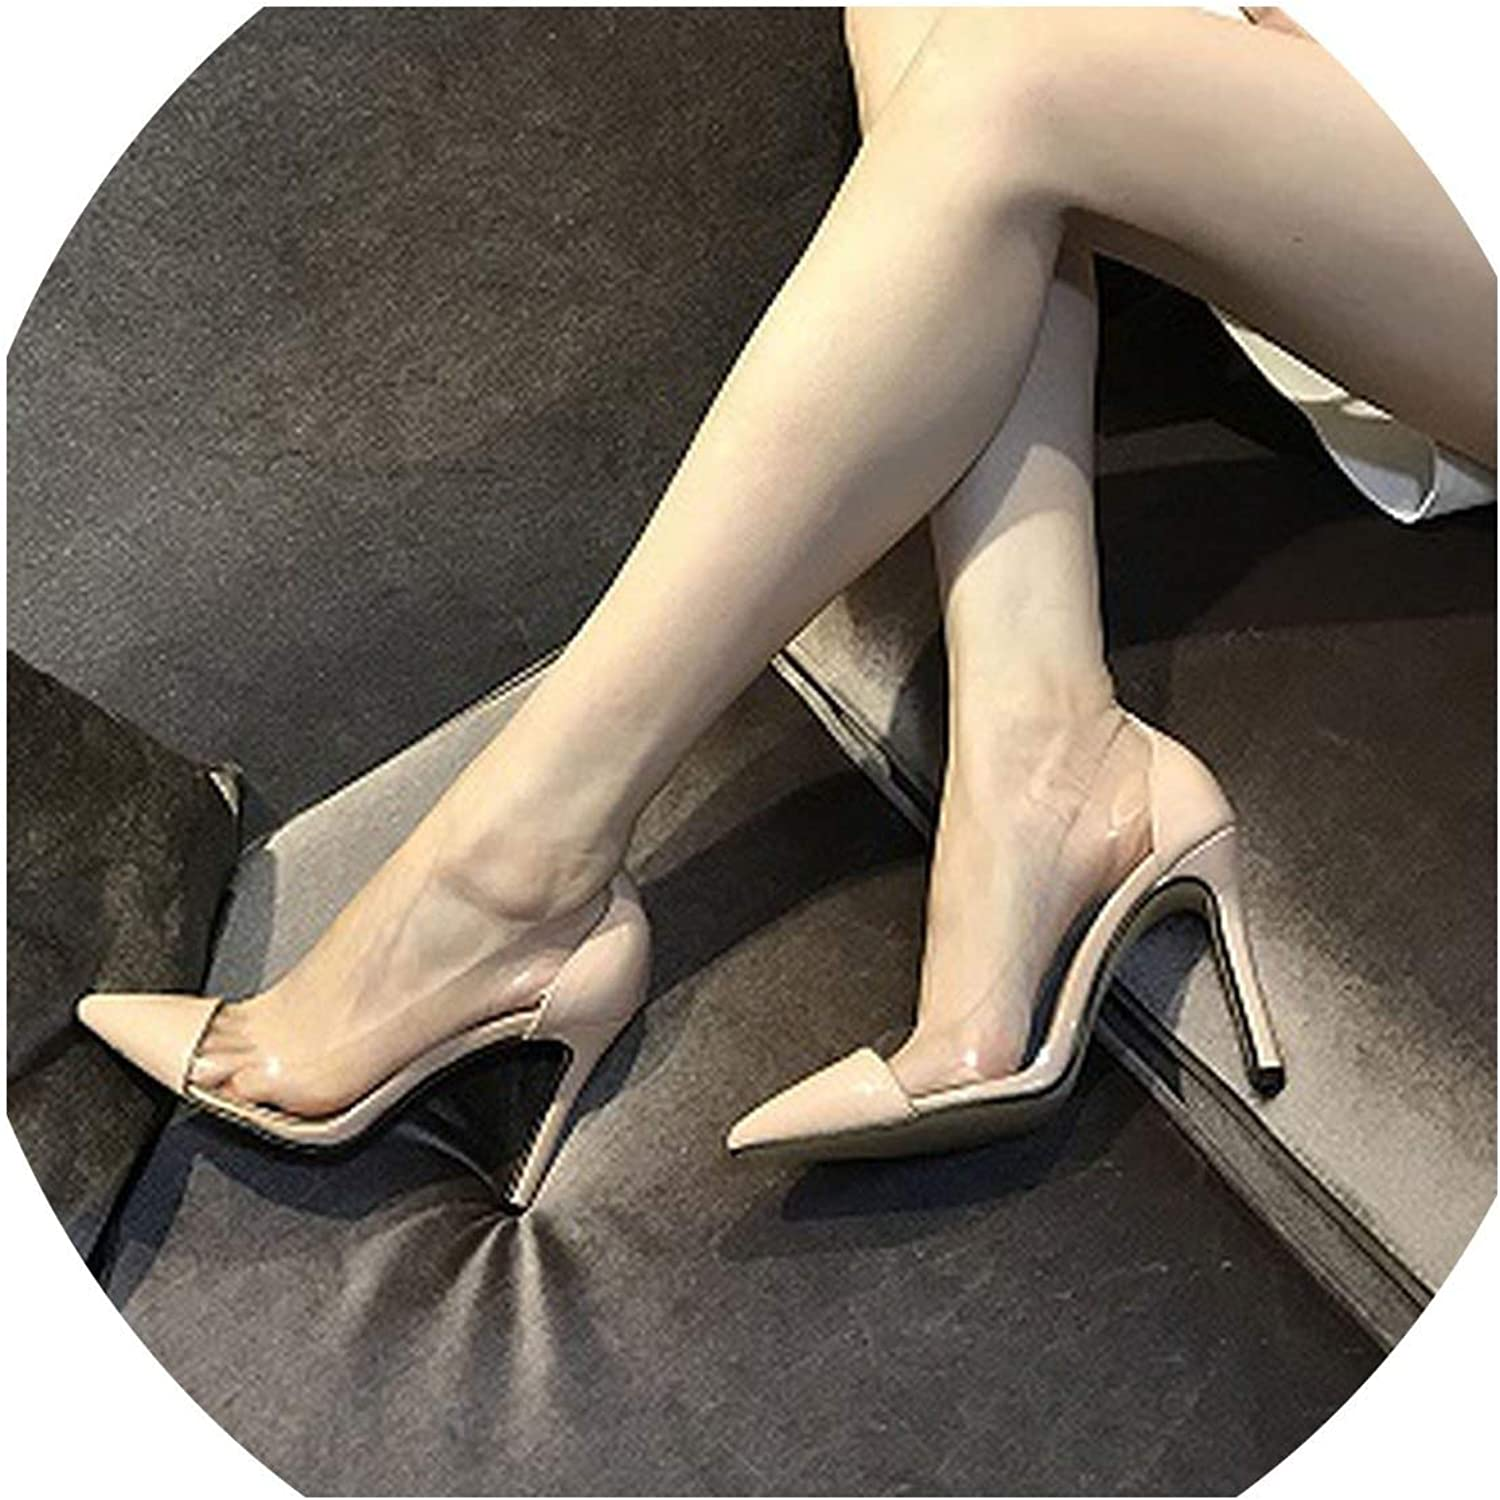 Pleasantlyday Transparent High Heels Shallow Leather Women's shoes